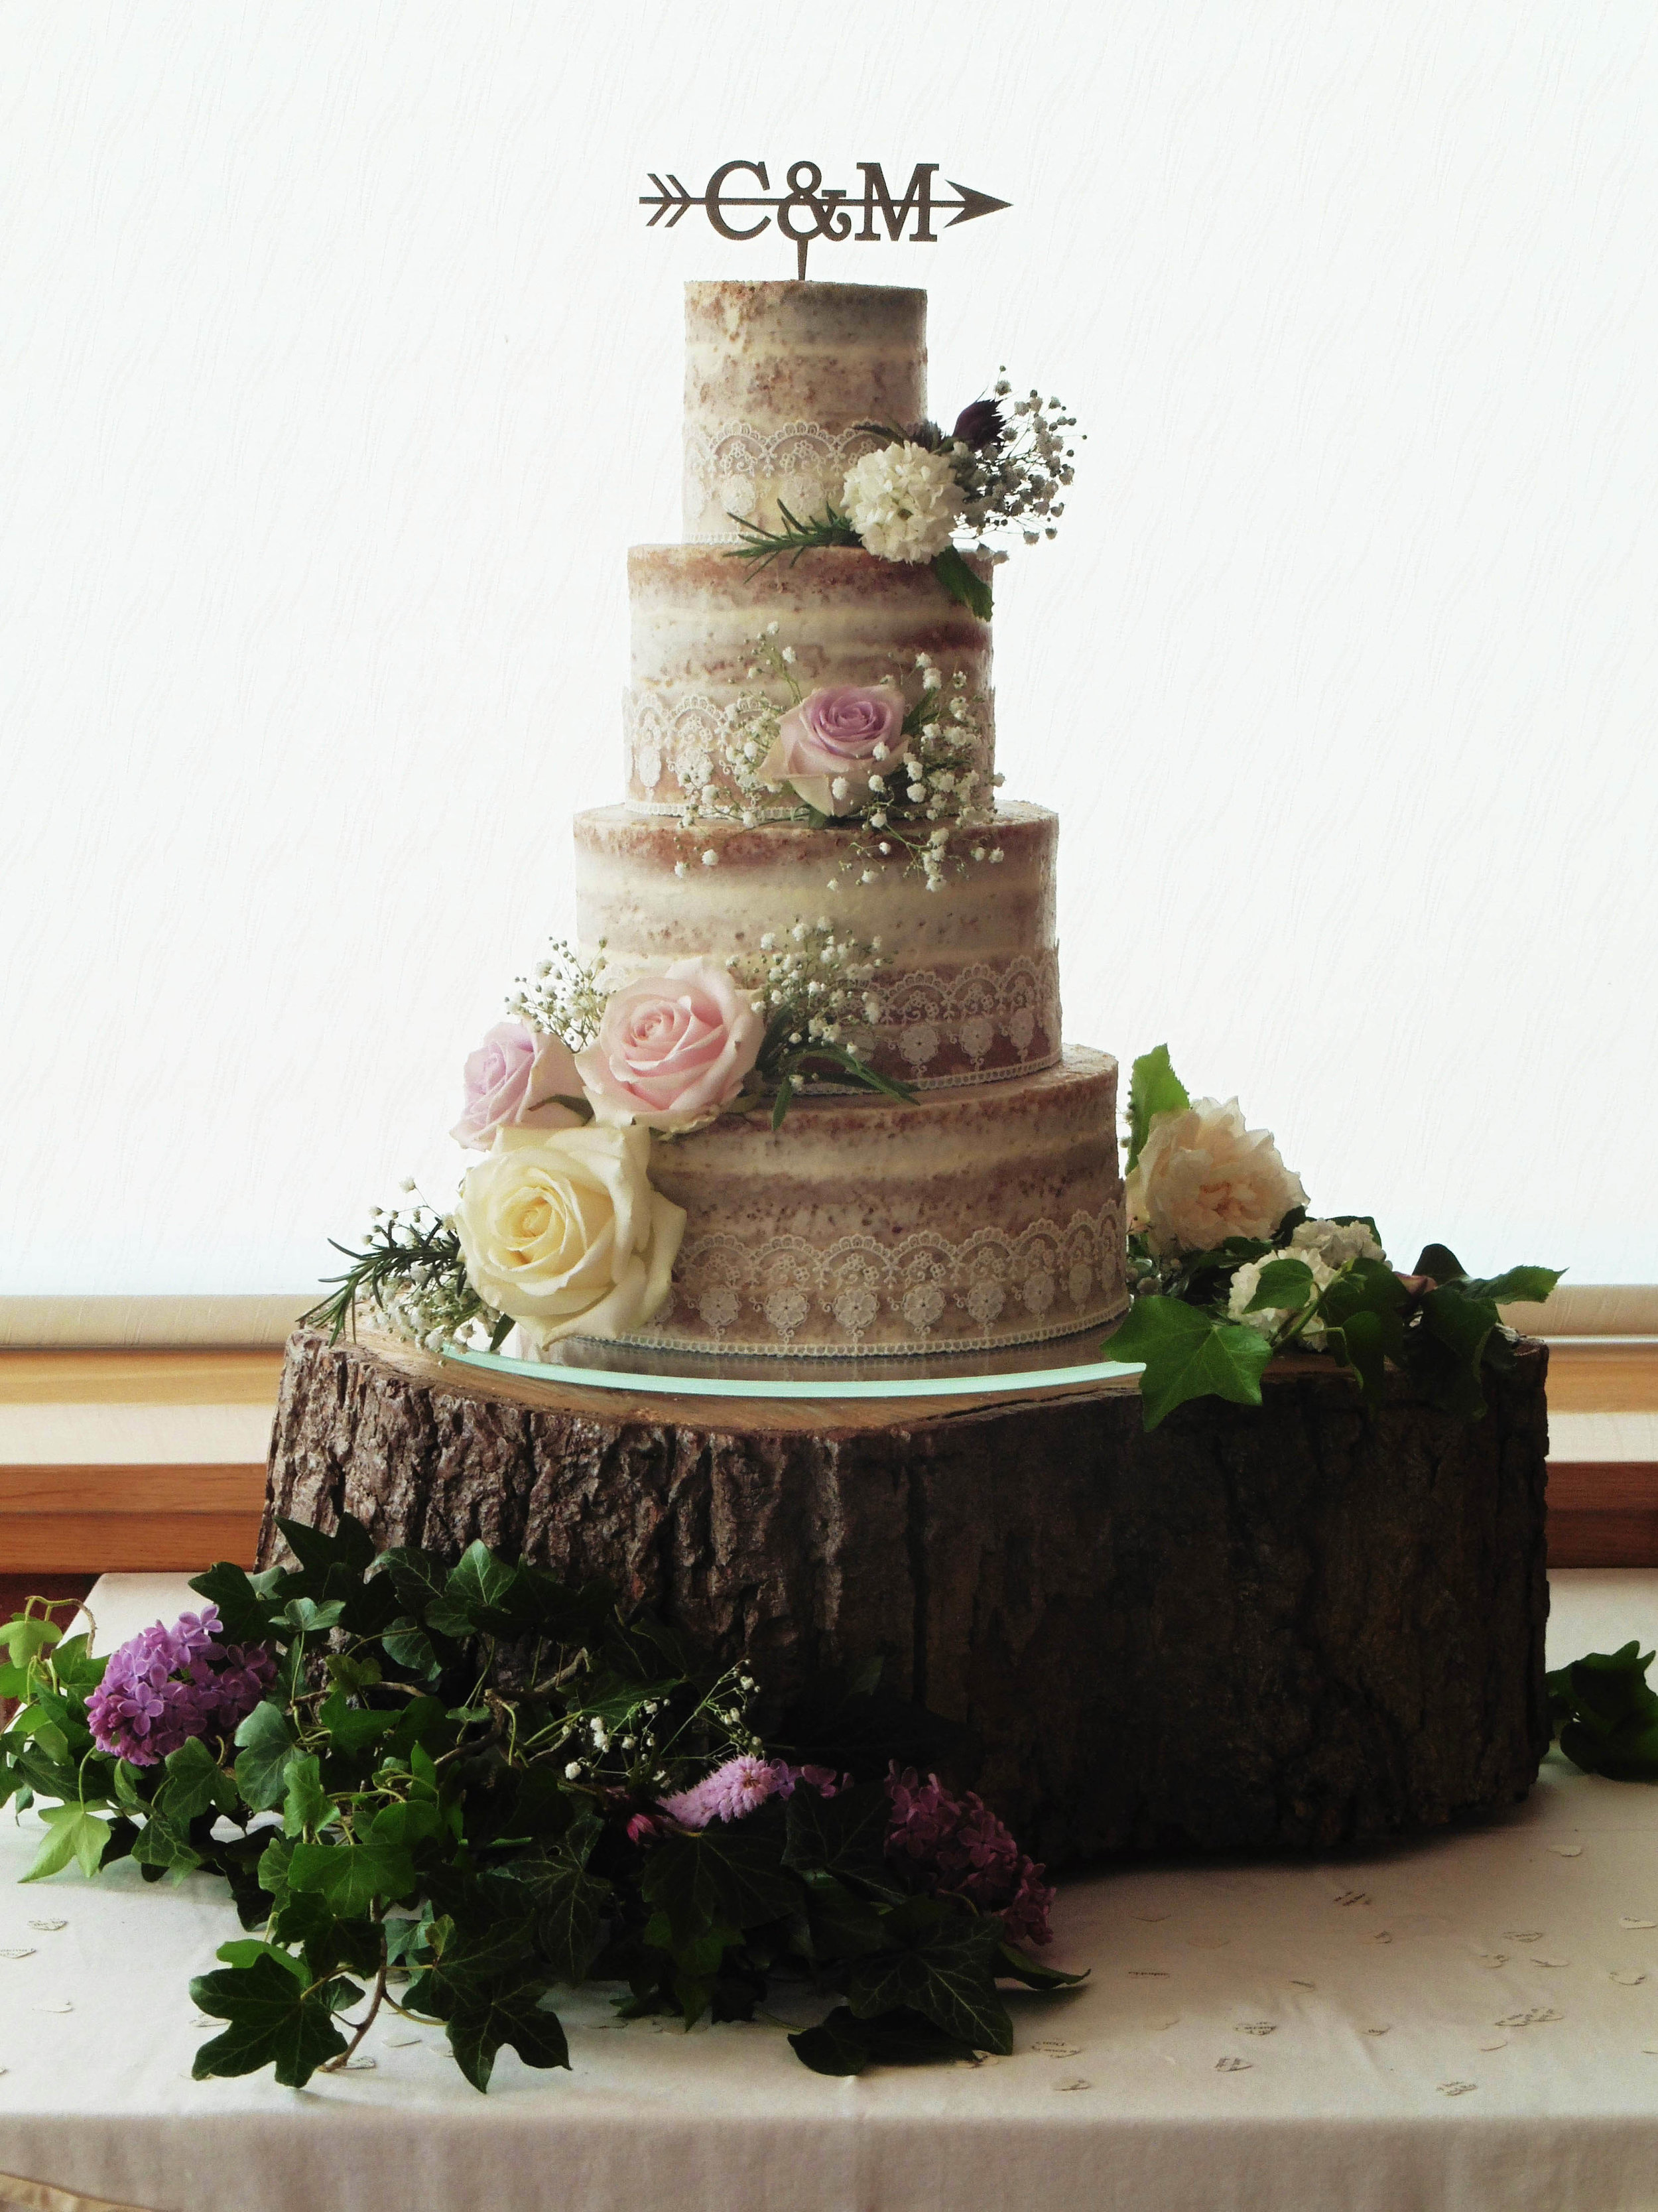 Semi-naked cake with edible lace